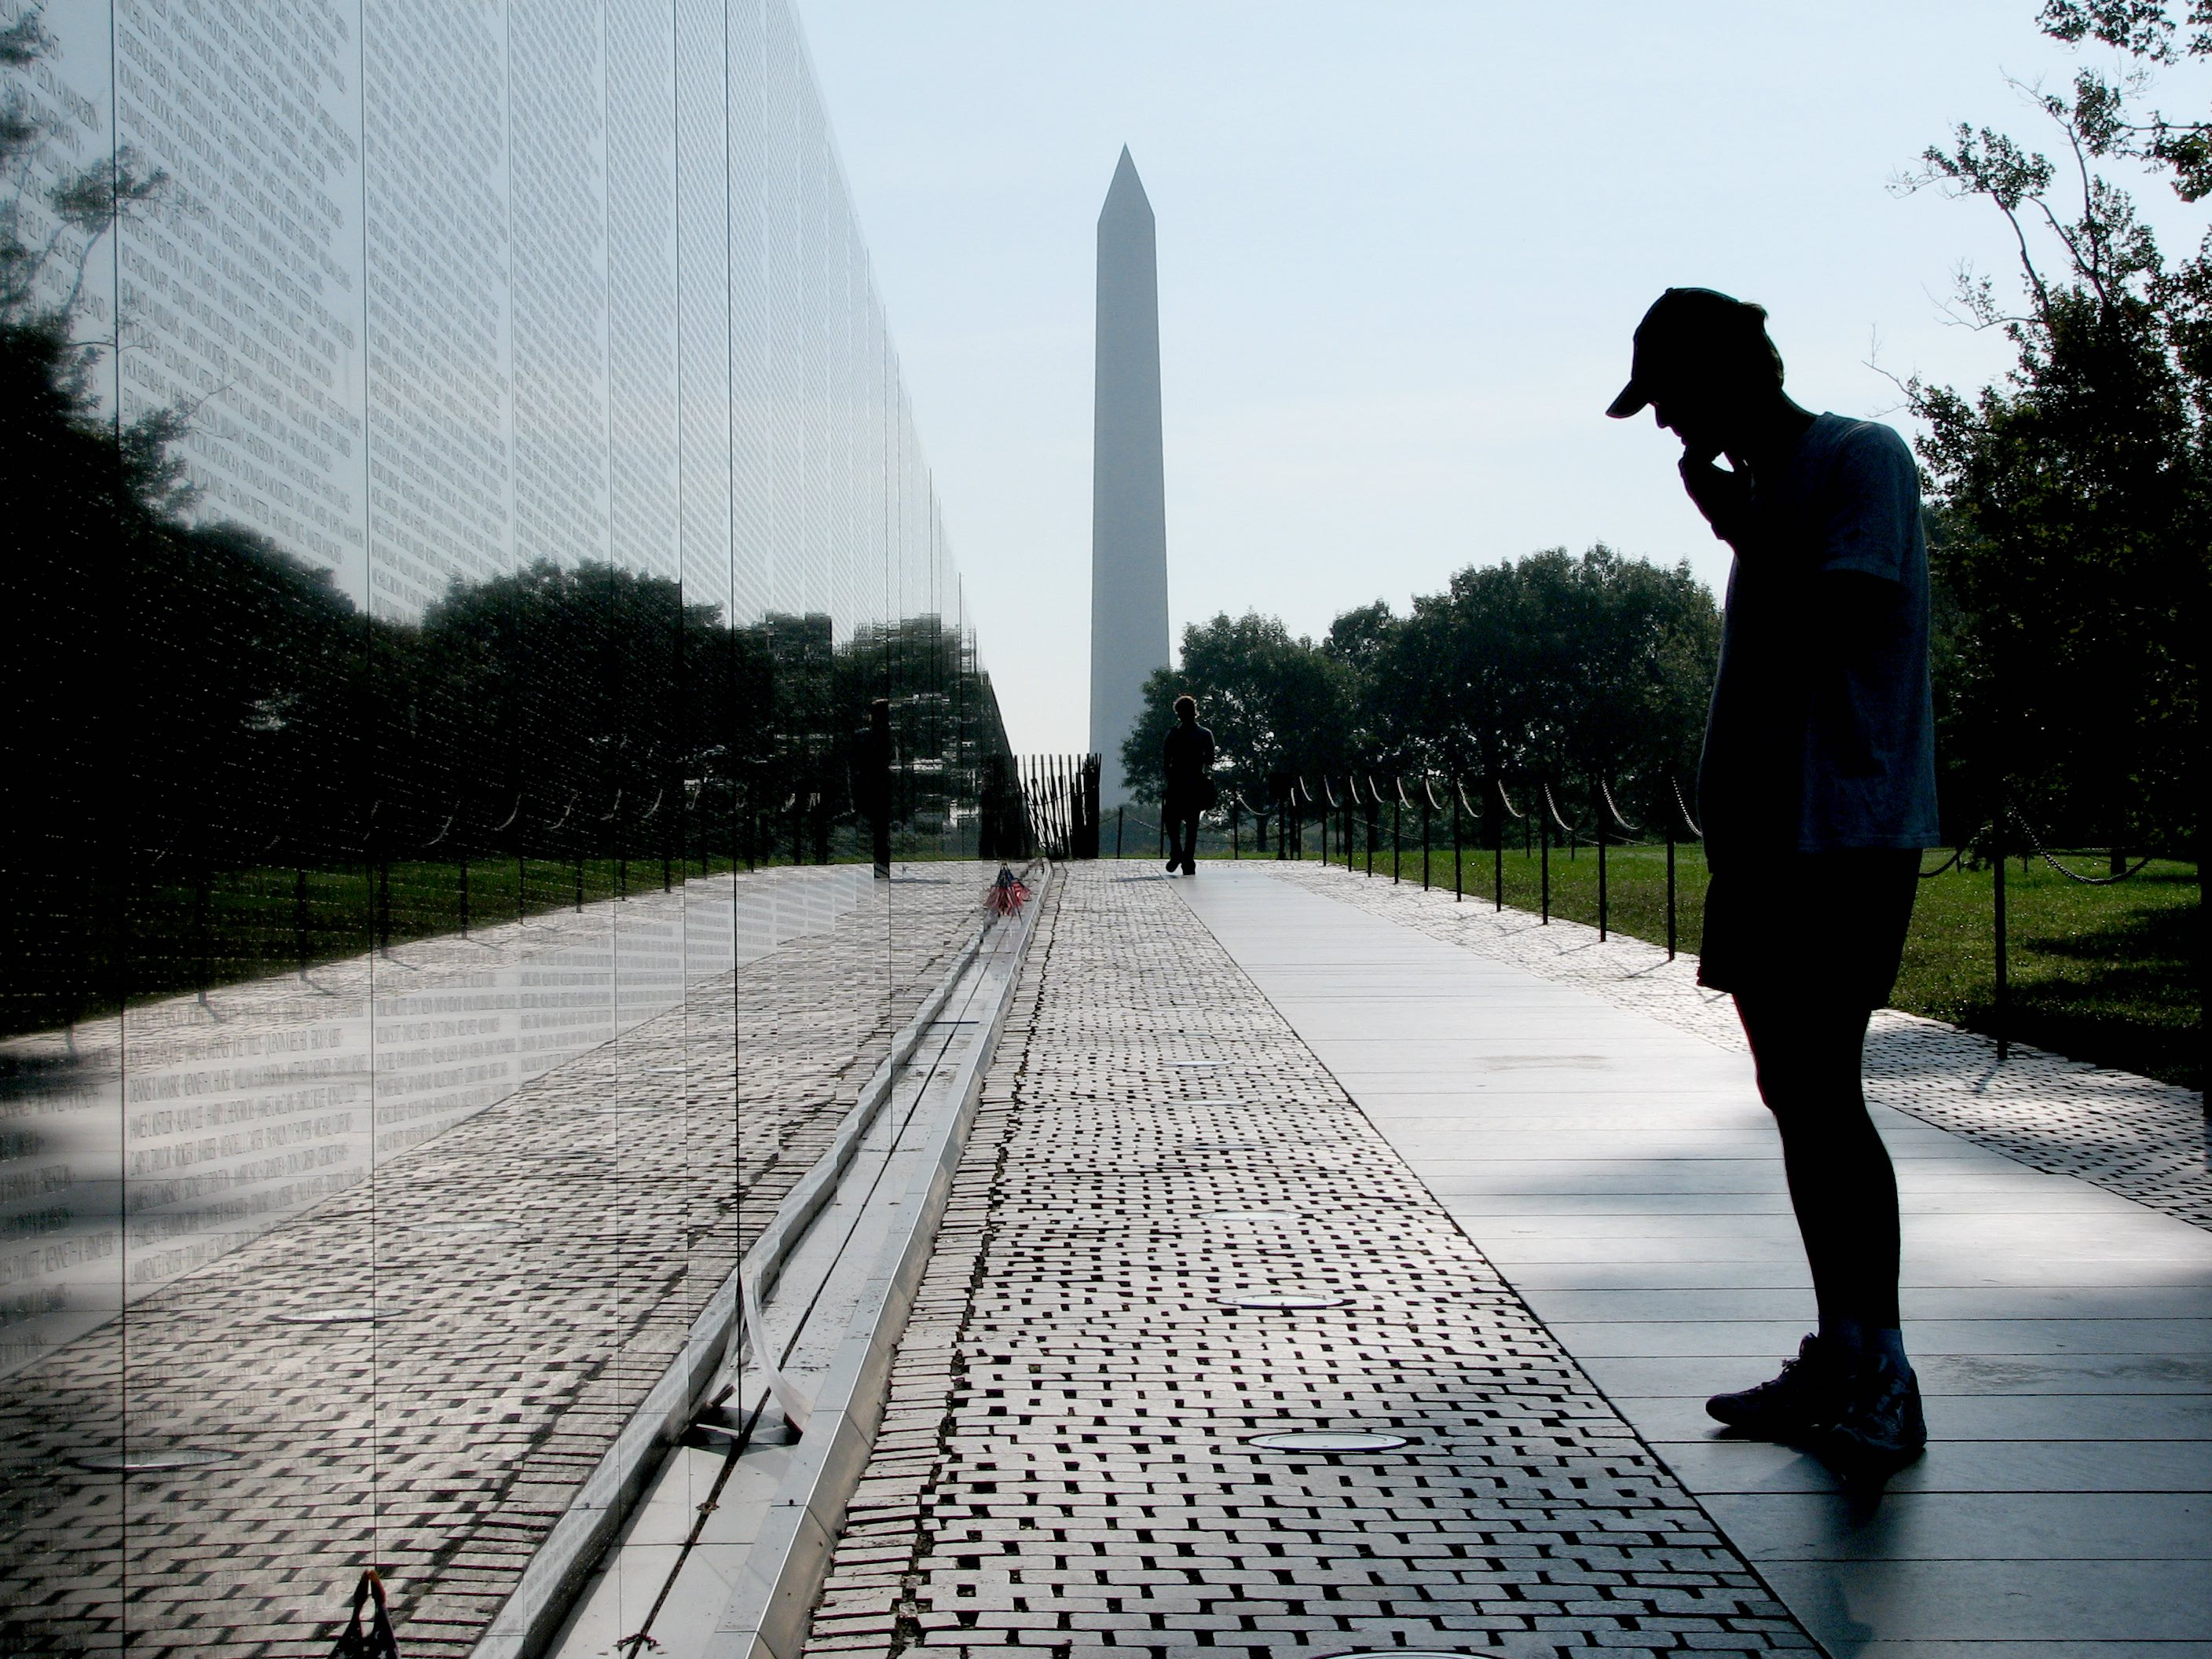 The Vietnam Veterans Memorial In Washington D.C. Two Simple Walls Of  Polished Granite